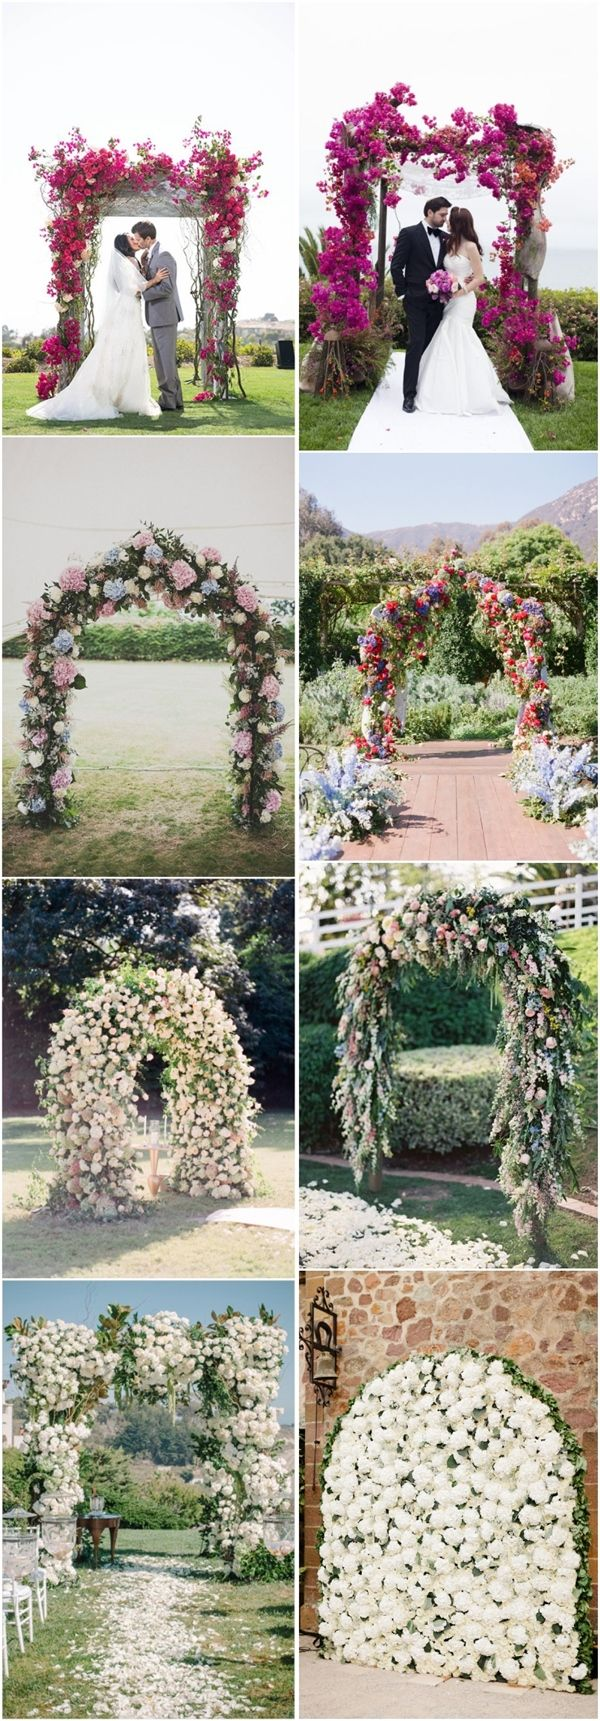 25  Stuning Wedding Arches with Lots of Flowers | http://www.deerpearlflowers.com/25-stuning-wedding-arches-with-lots-of-flowers/